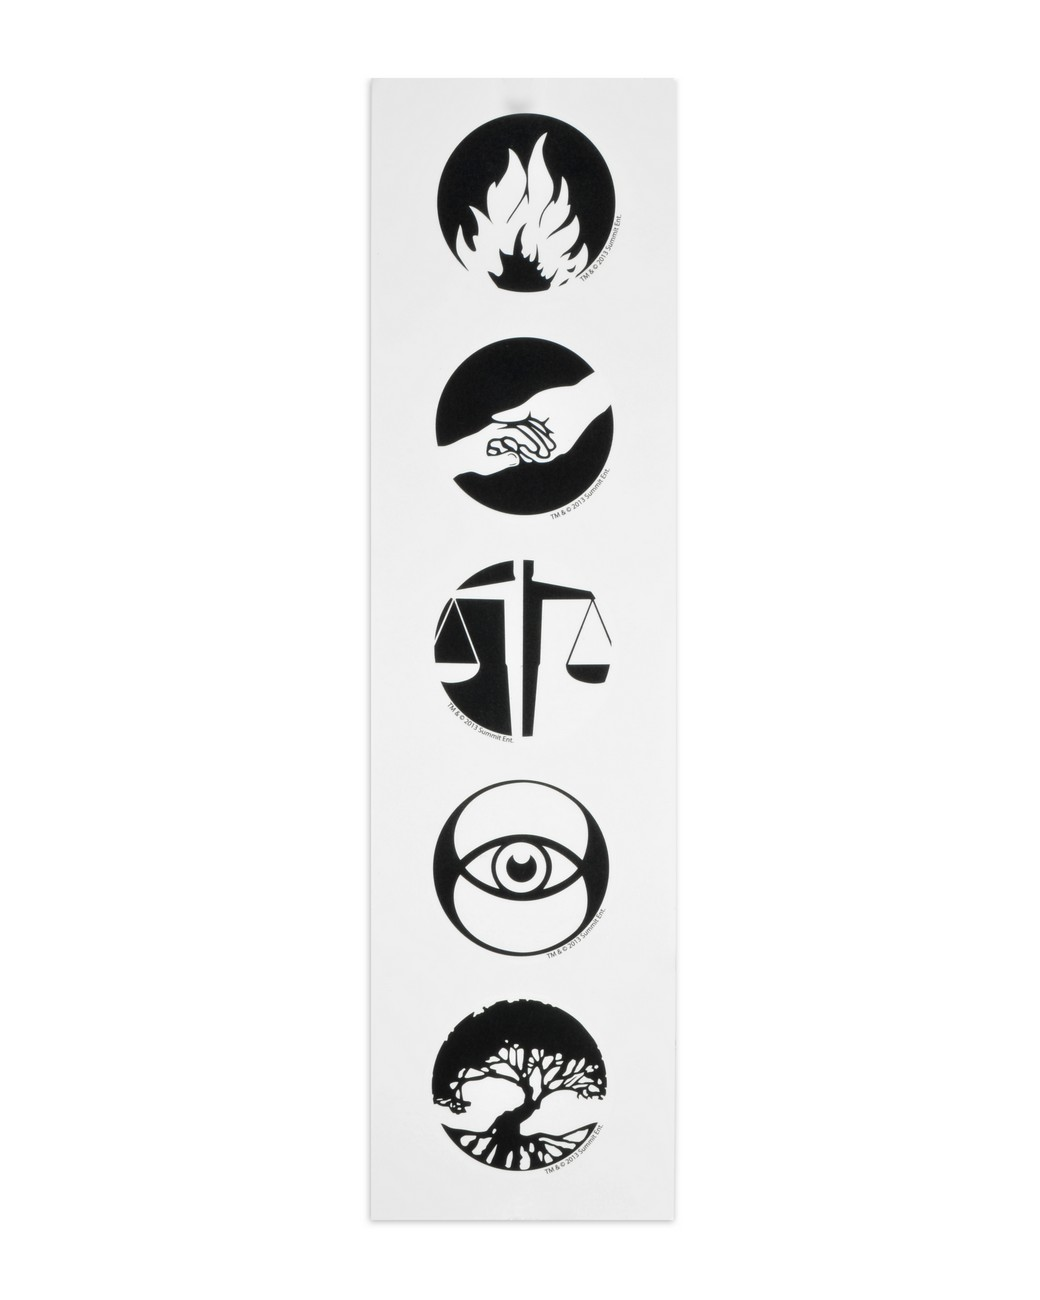 divergent faction symbols temporary tattoos necaonline